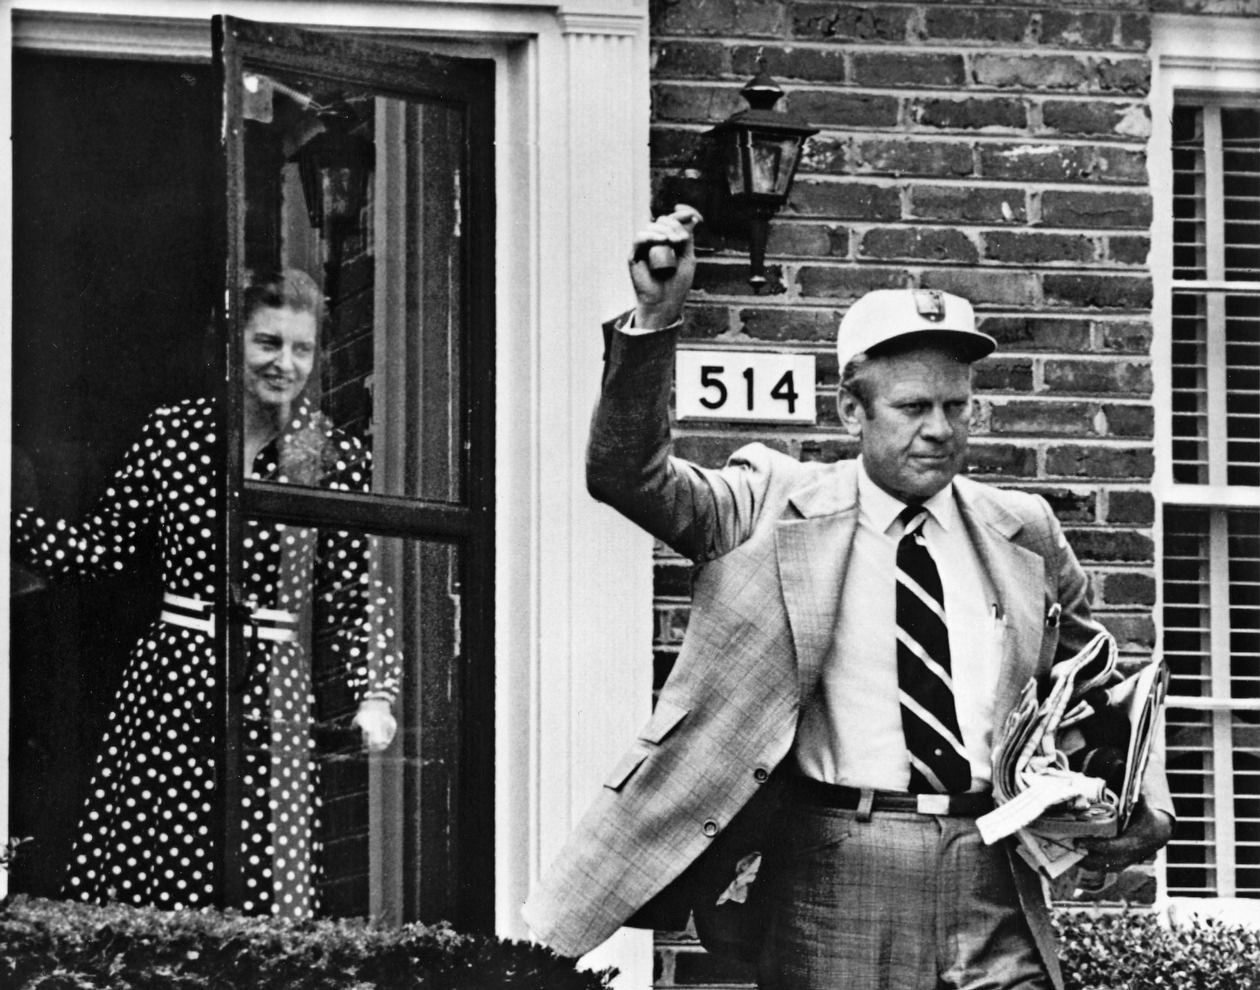 President Gerald Ford leaves his Alexandria, Va., home to go to work at the White House the day after he was sworn in. The Nixons' personal belongings had not yet been moved out of the White House living quarters.